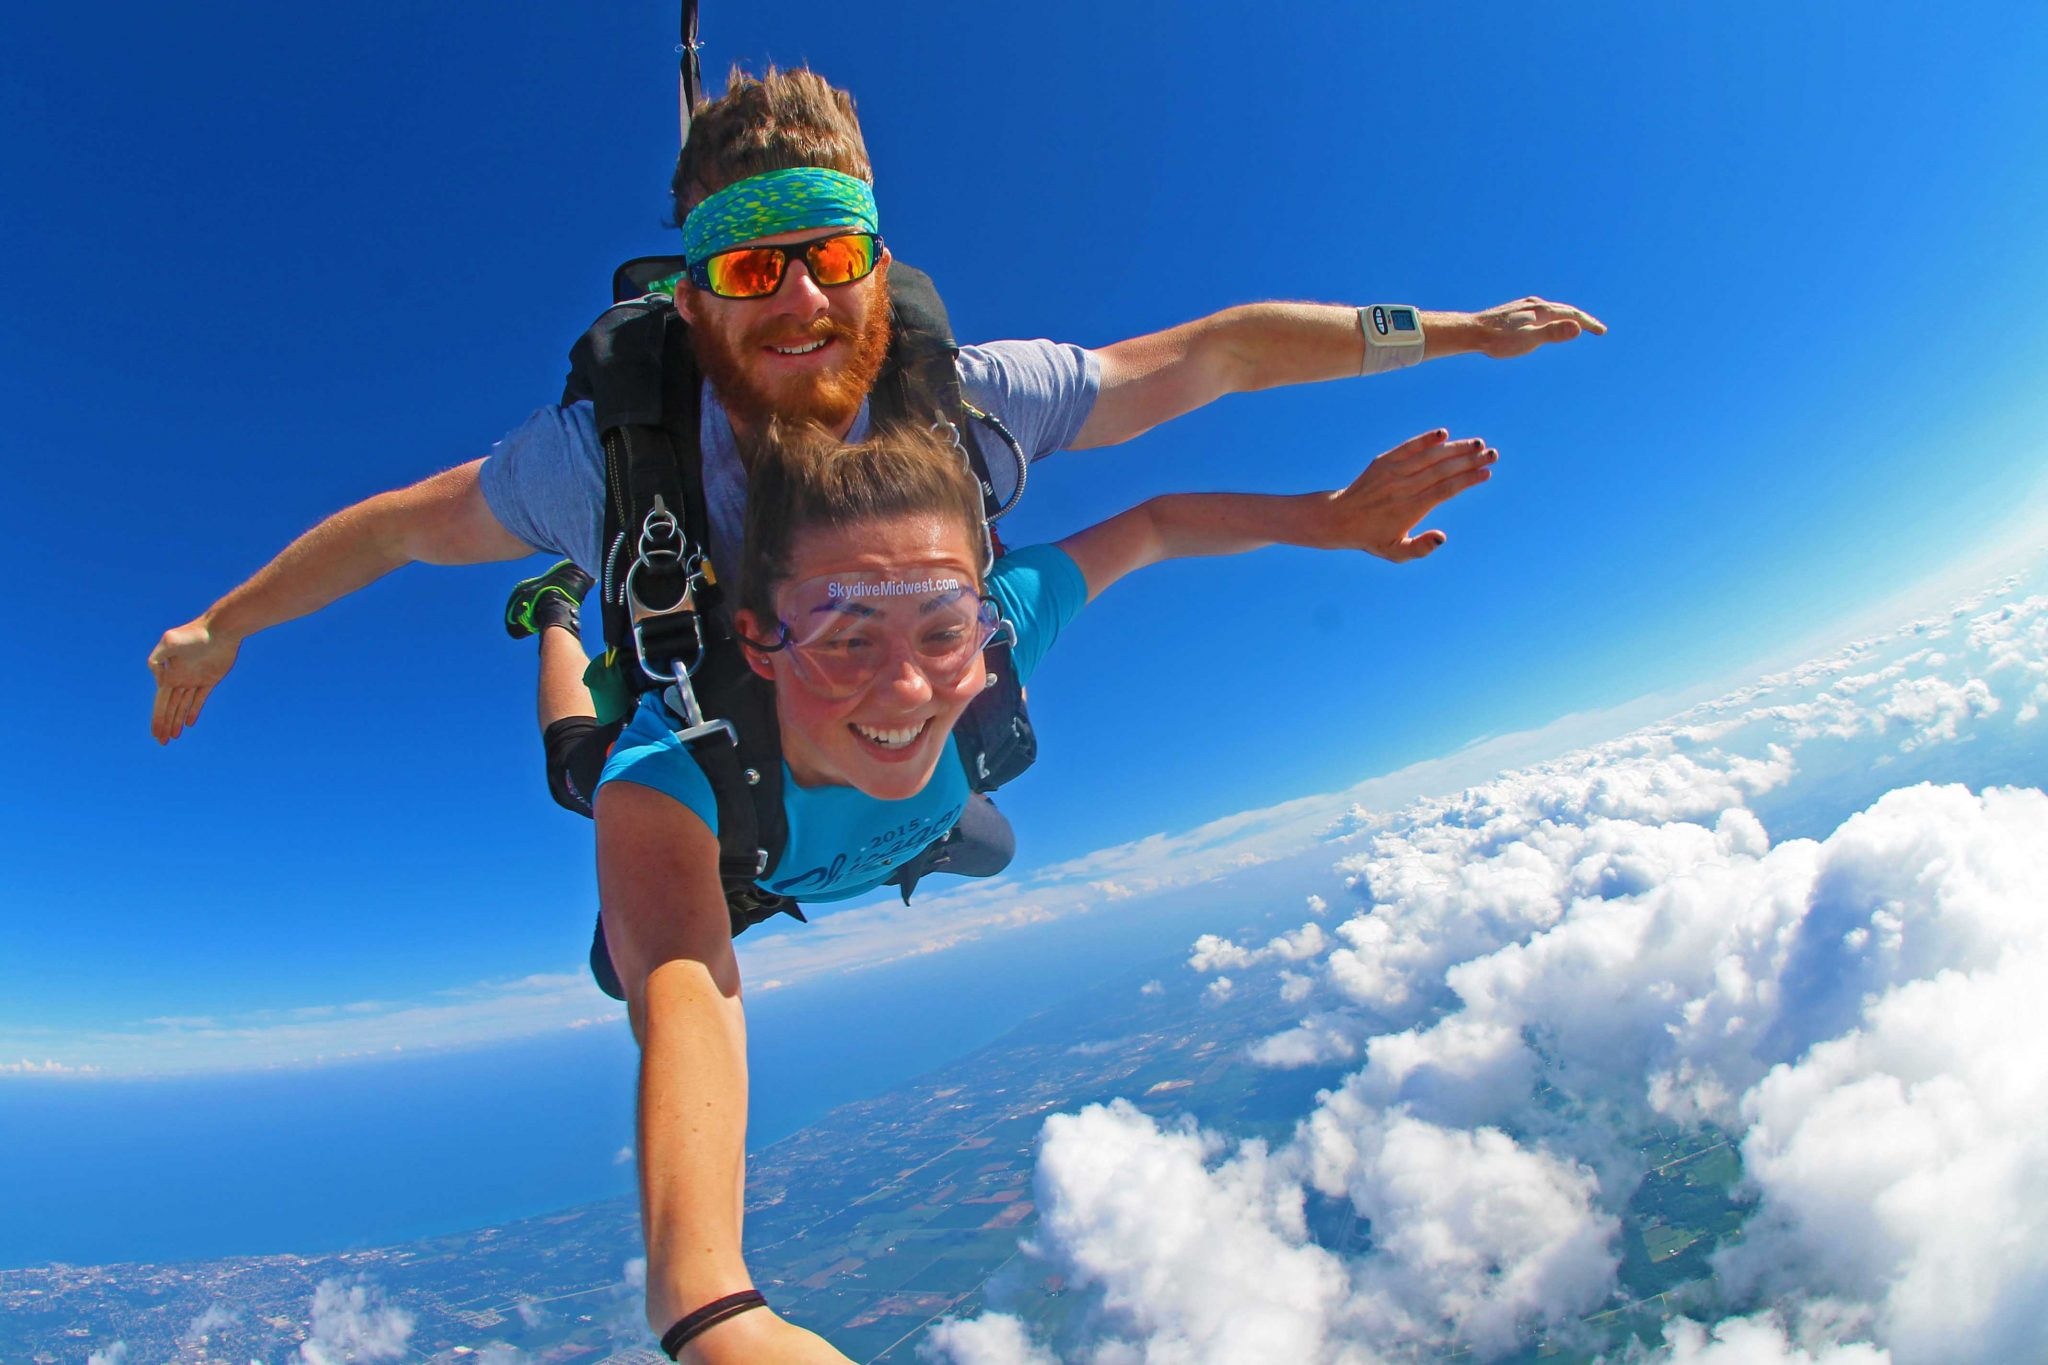 It S About Adventure Experiences And Sharing Those Things With The People You Love Skydiving Is An Experience Unlike Any Other